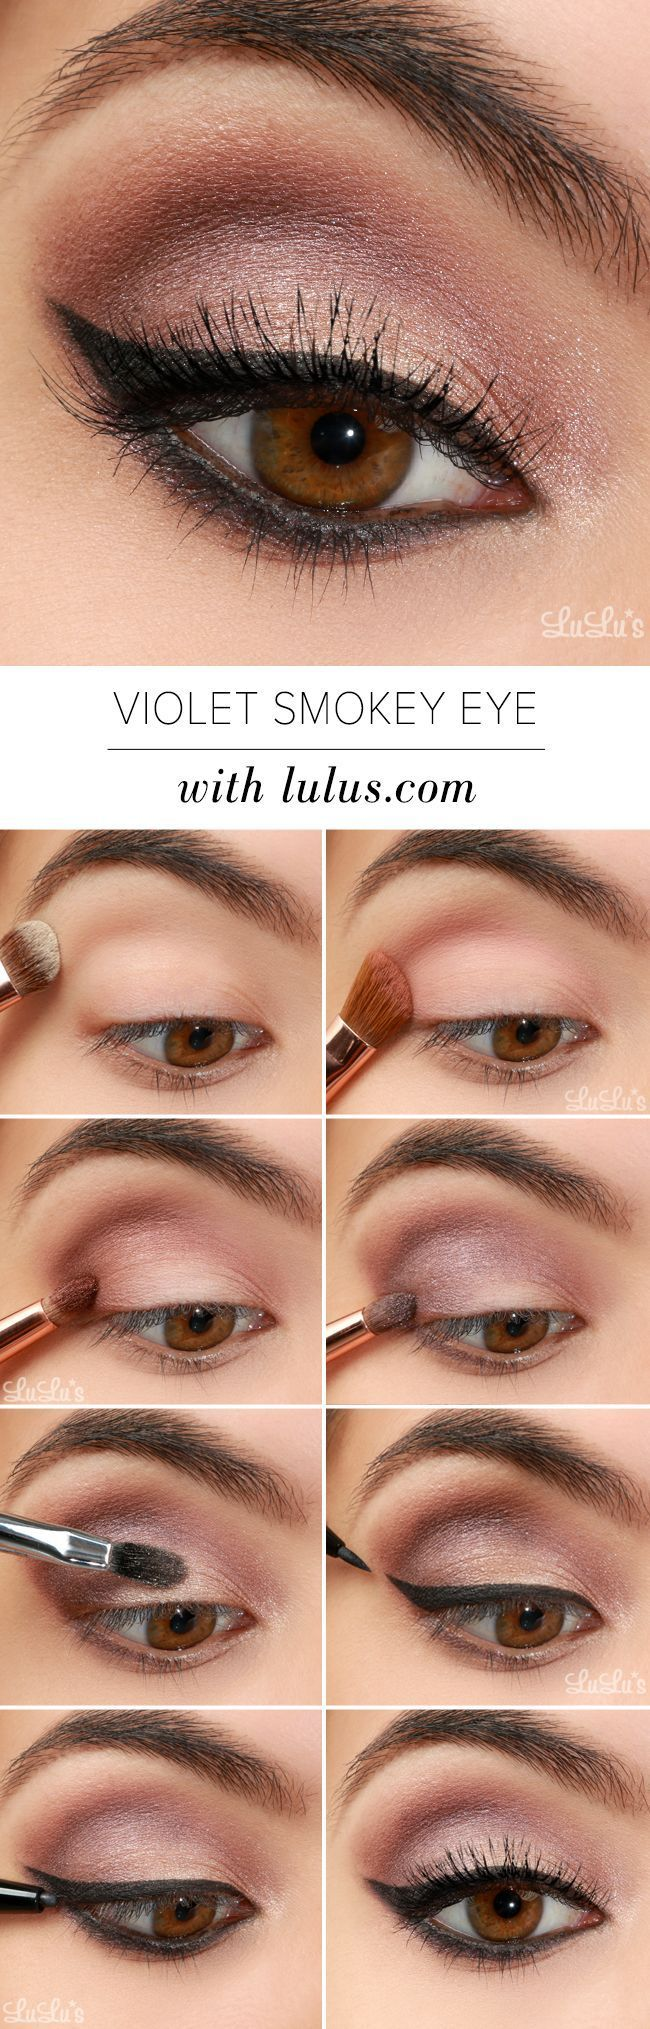 LuLu*s How-To: Violet Smokey Eye Makeup Tutorial.